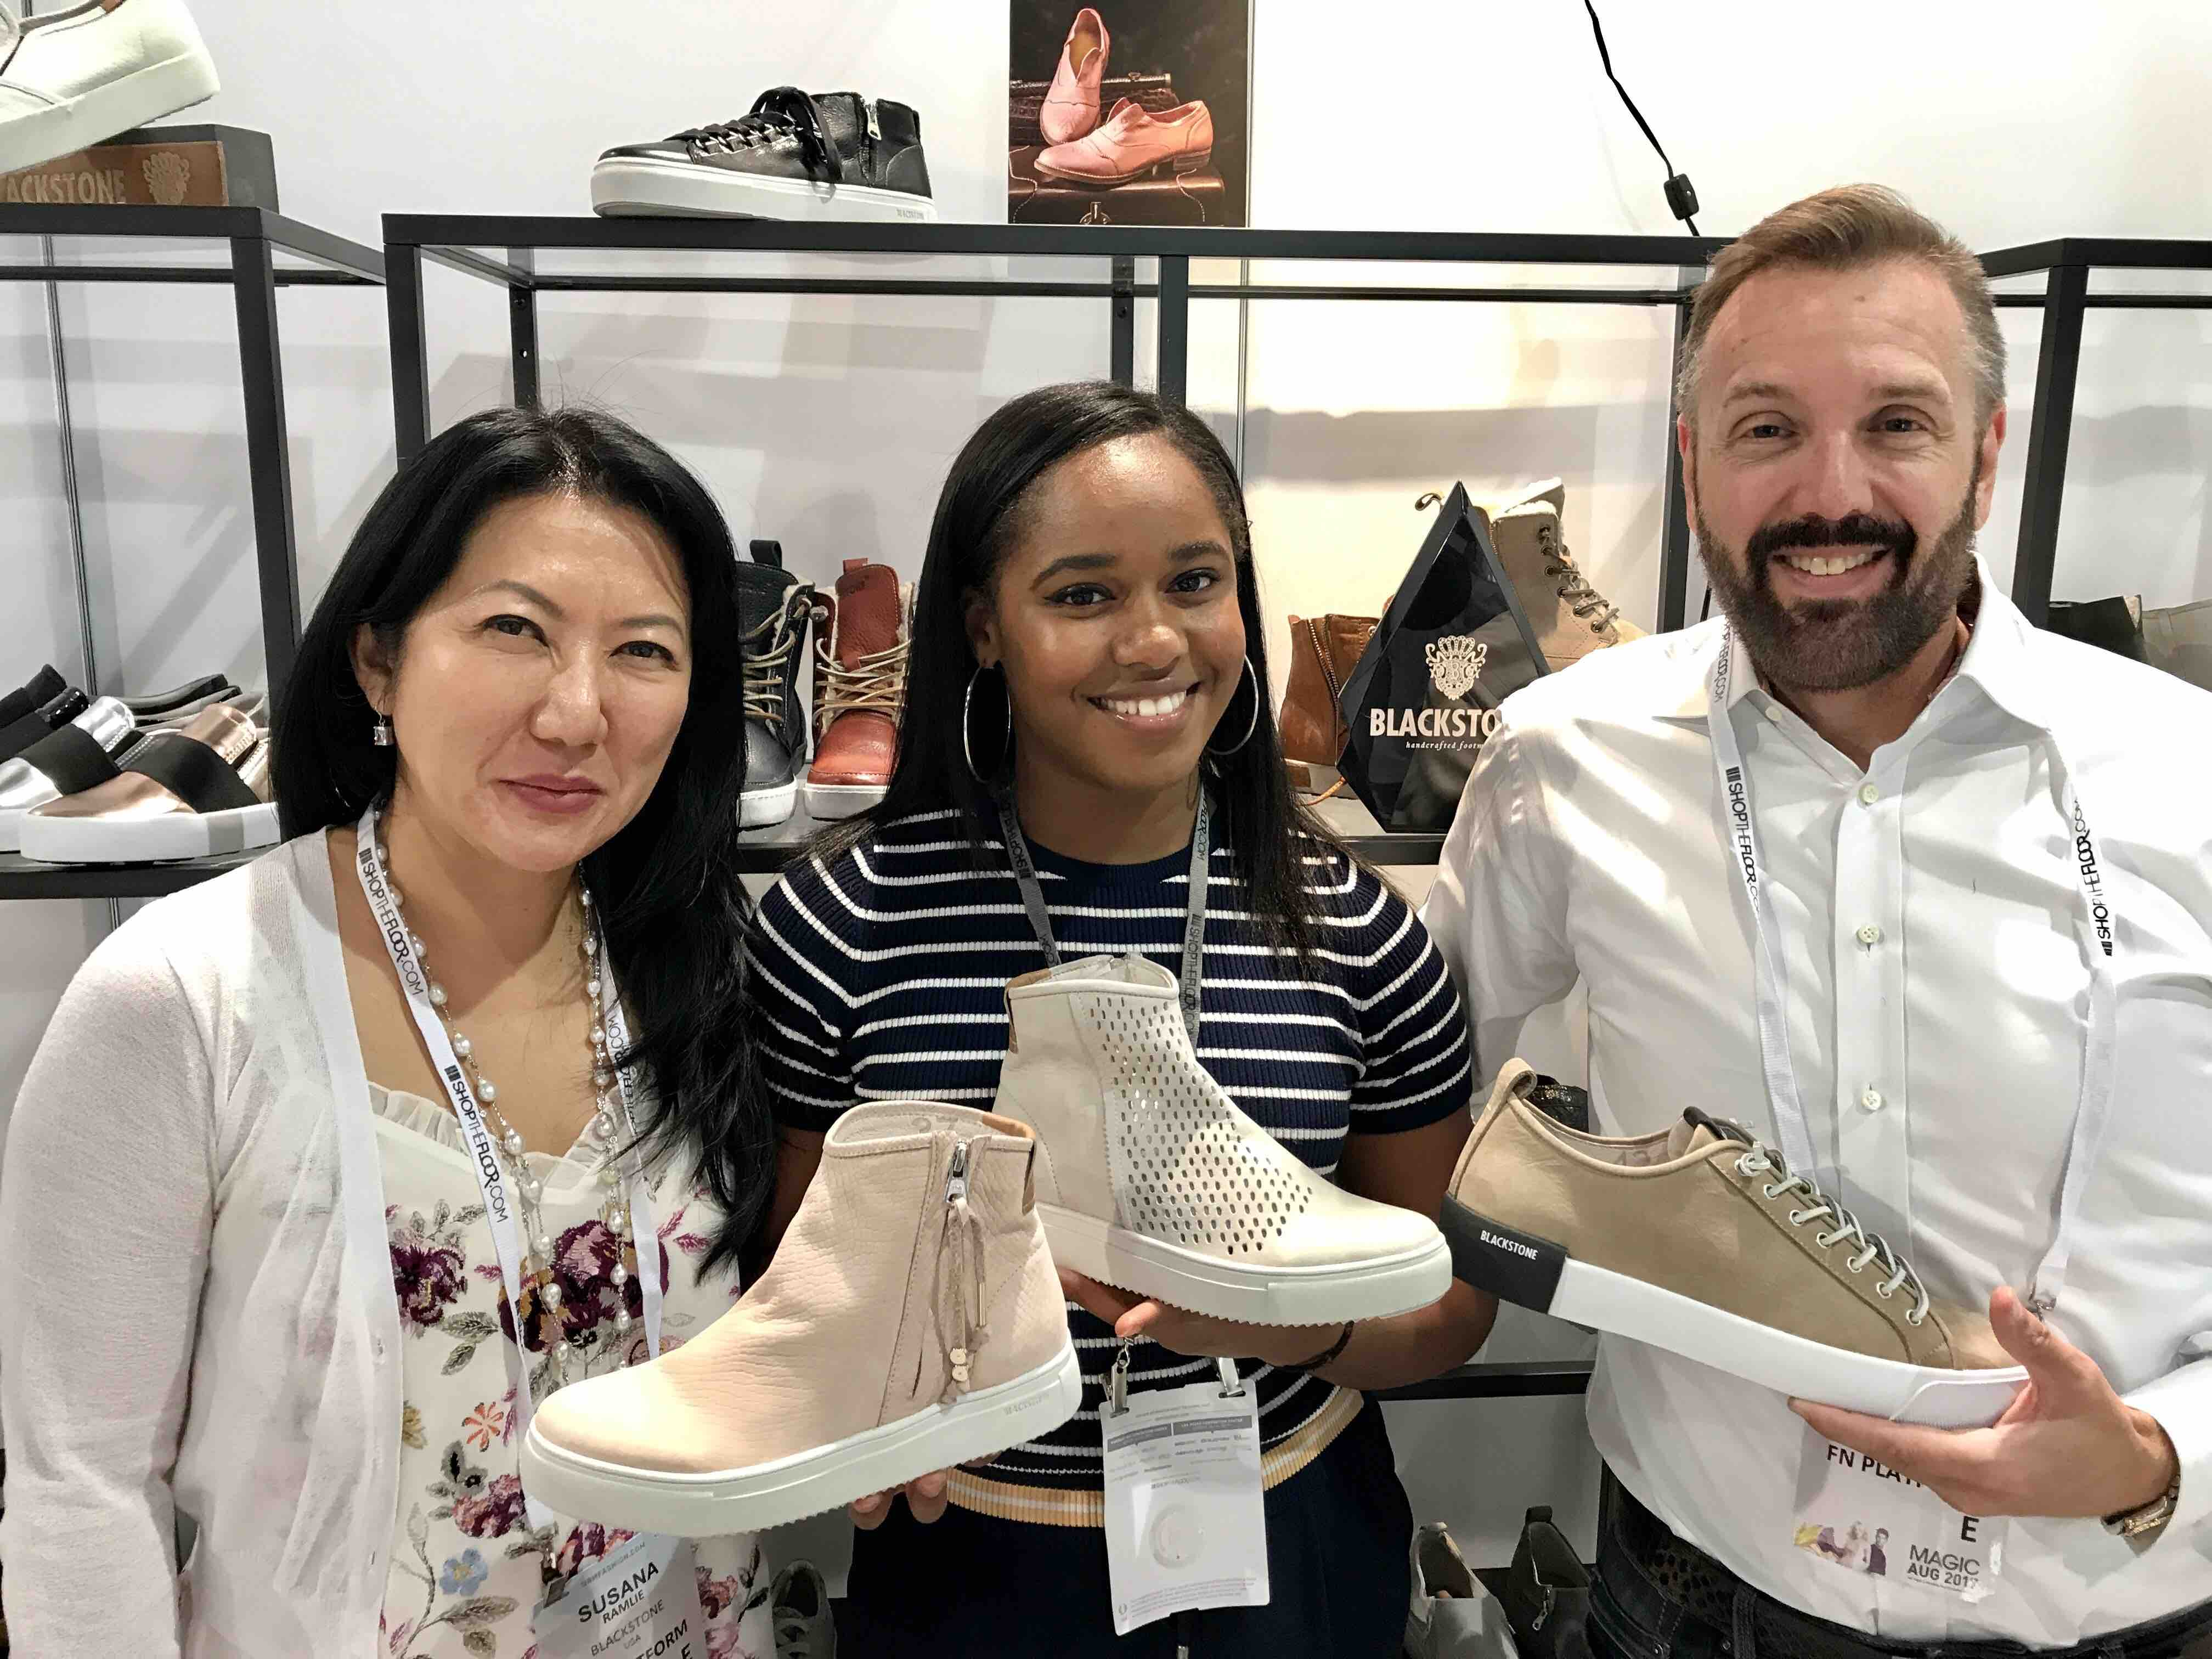 Peter Cochran and Susana Ramlie, Owners, Blackstone Shoes